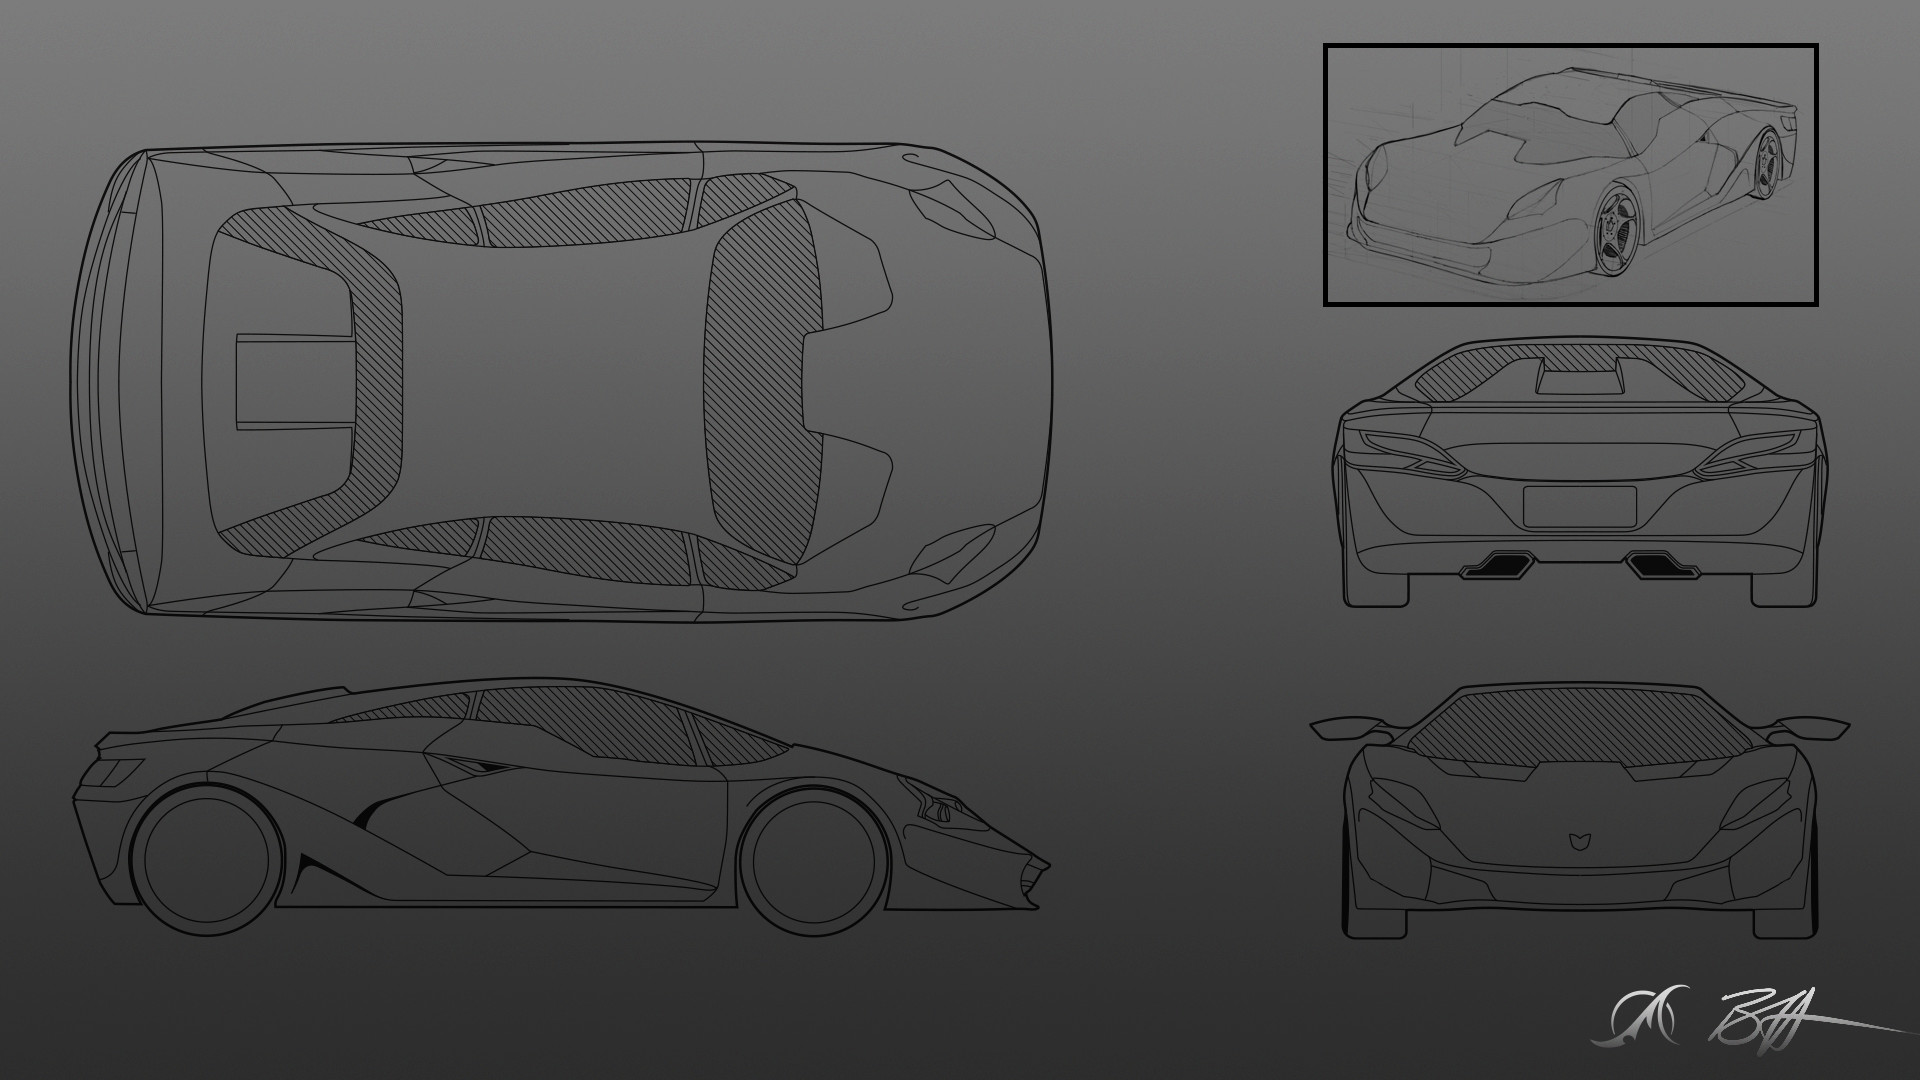 The model sheet created for the concept car in Photoshop and Sketchbook Pro